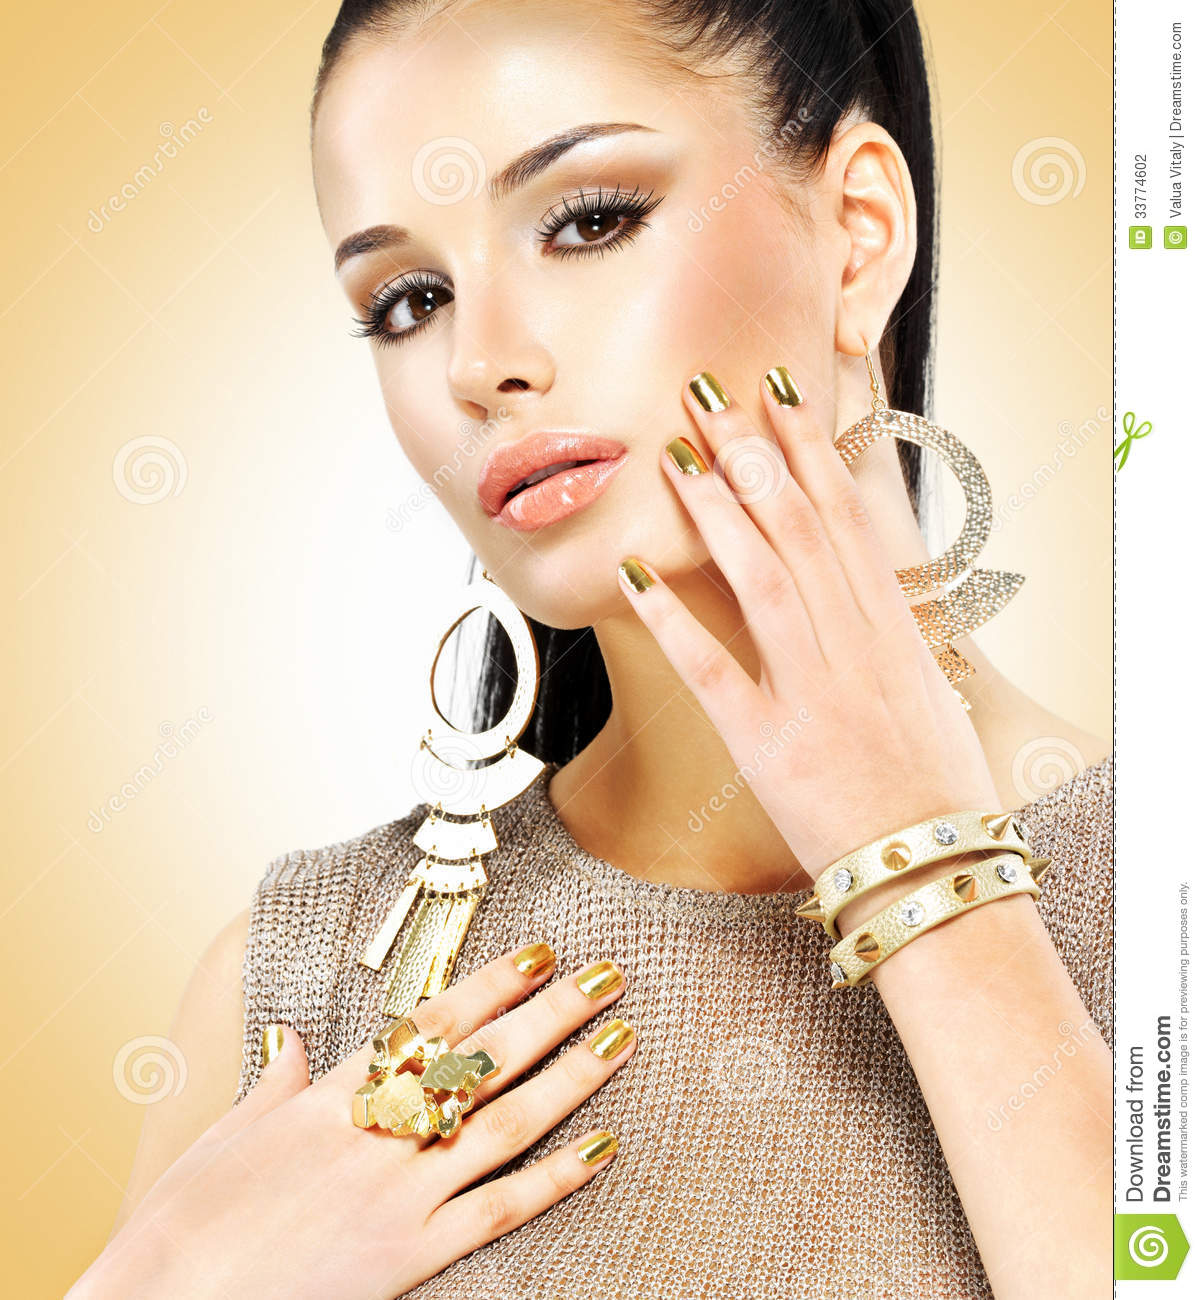 Fashion Beauty Model Girl Stock Image Image Of Manicured: Beautiful Fashion Woman With Black Makeup And Golden